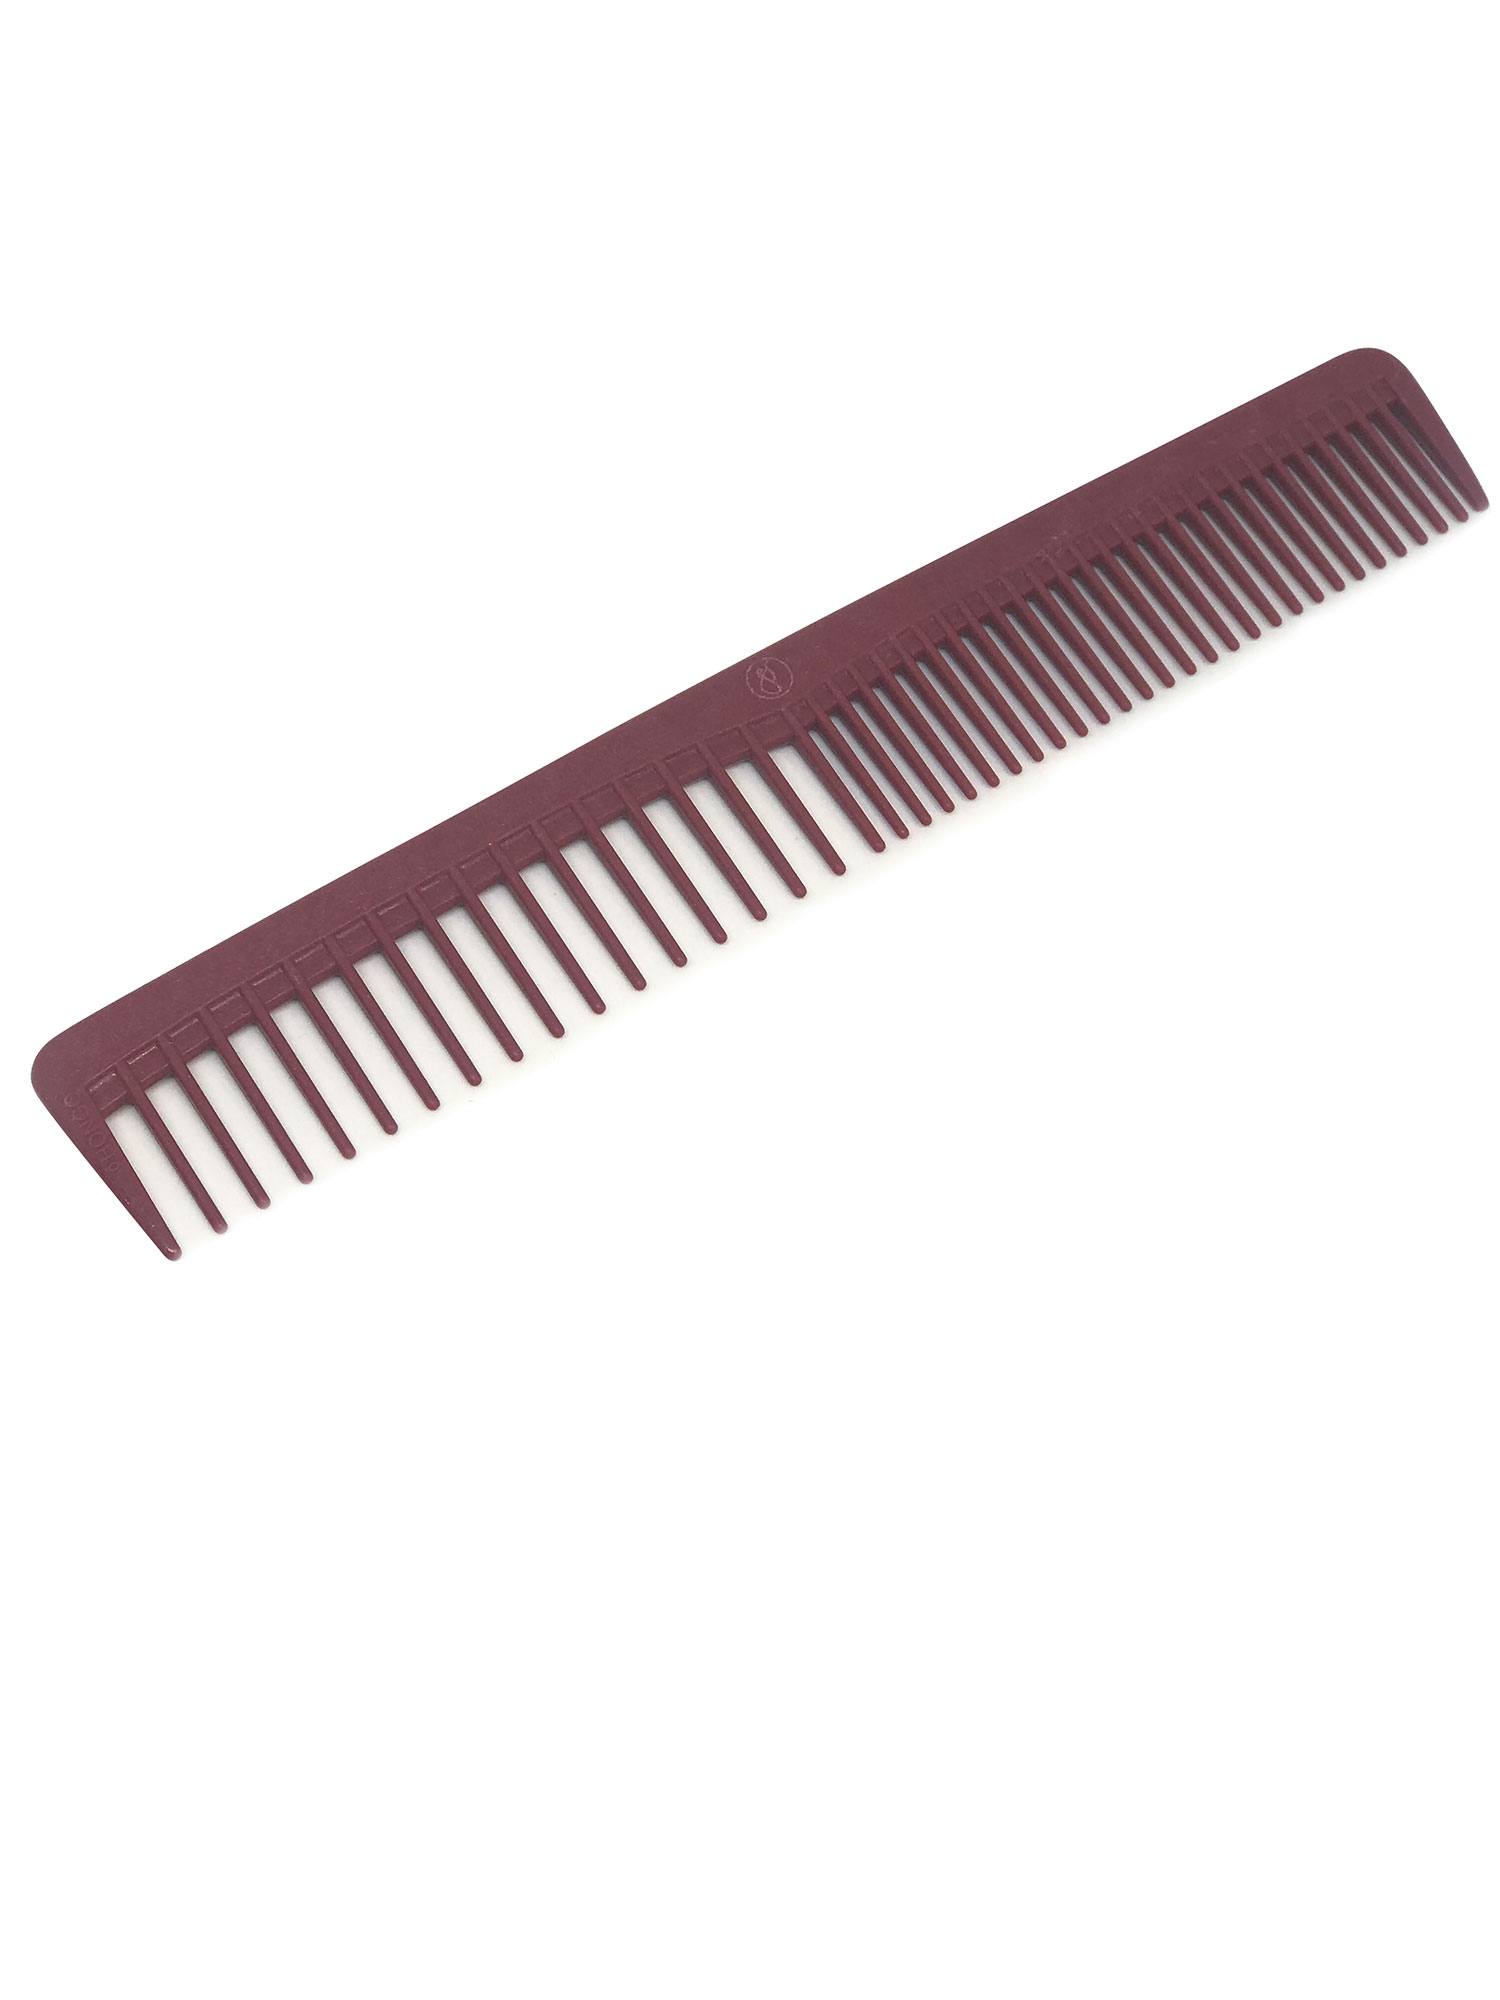 THE GS RED COMB